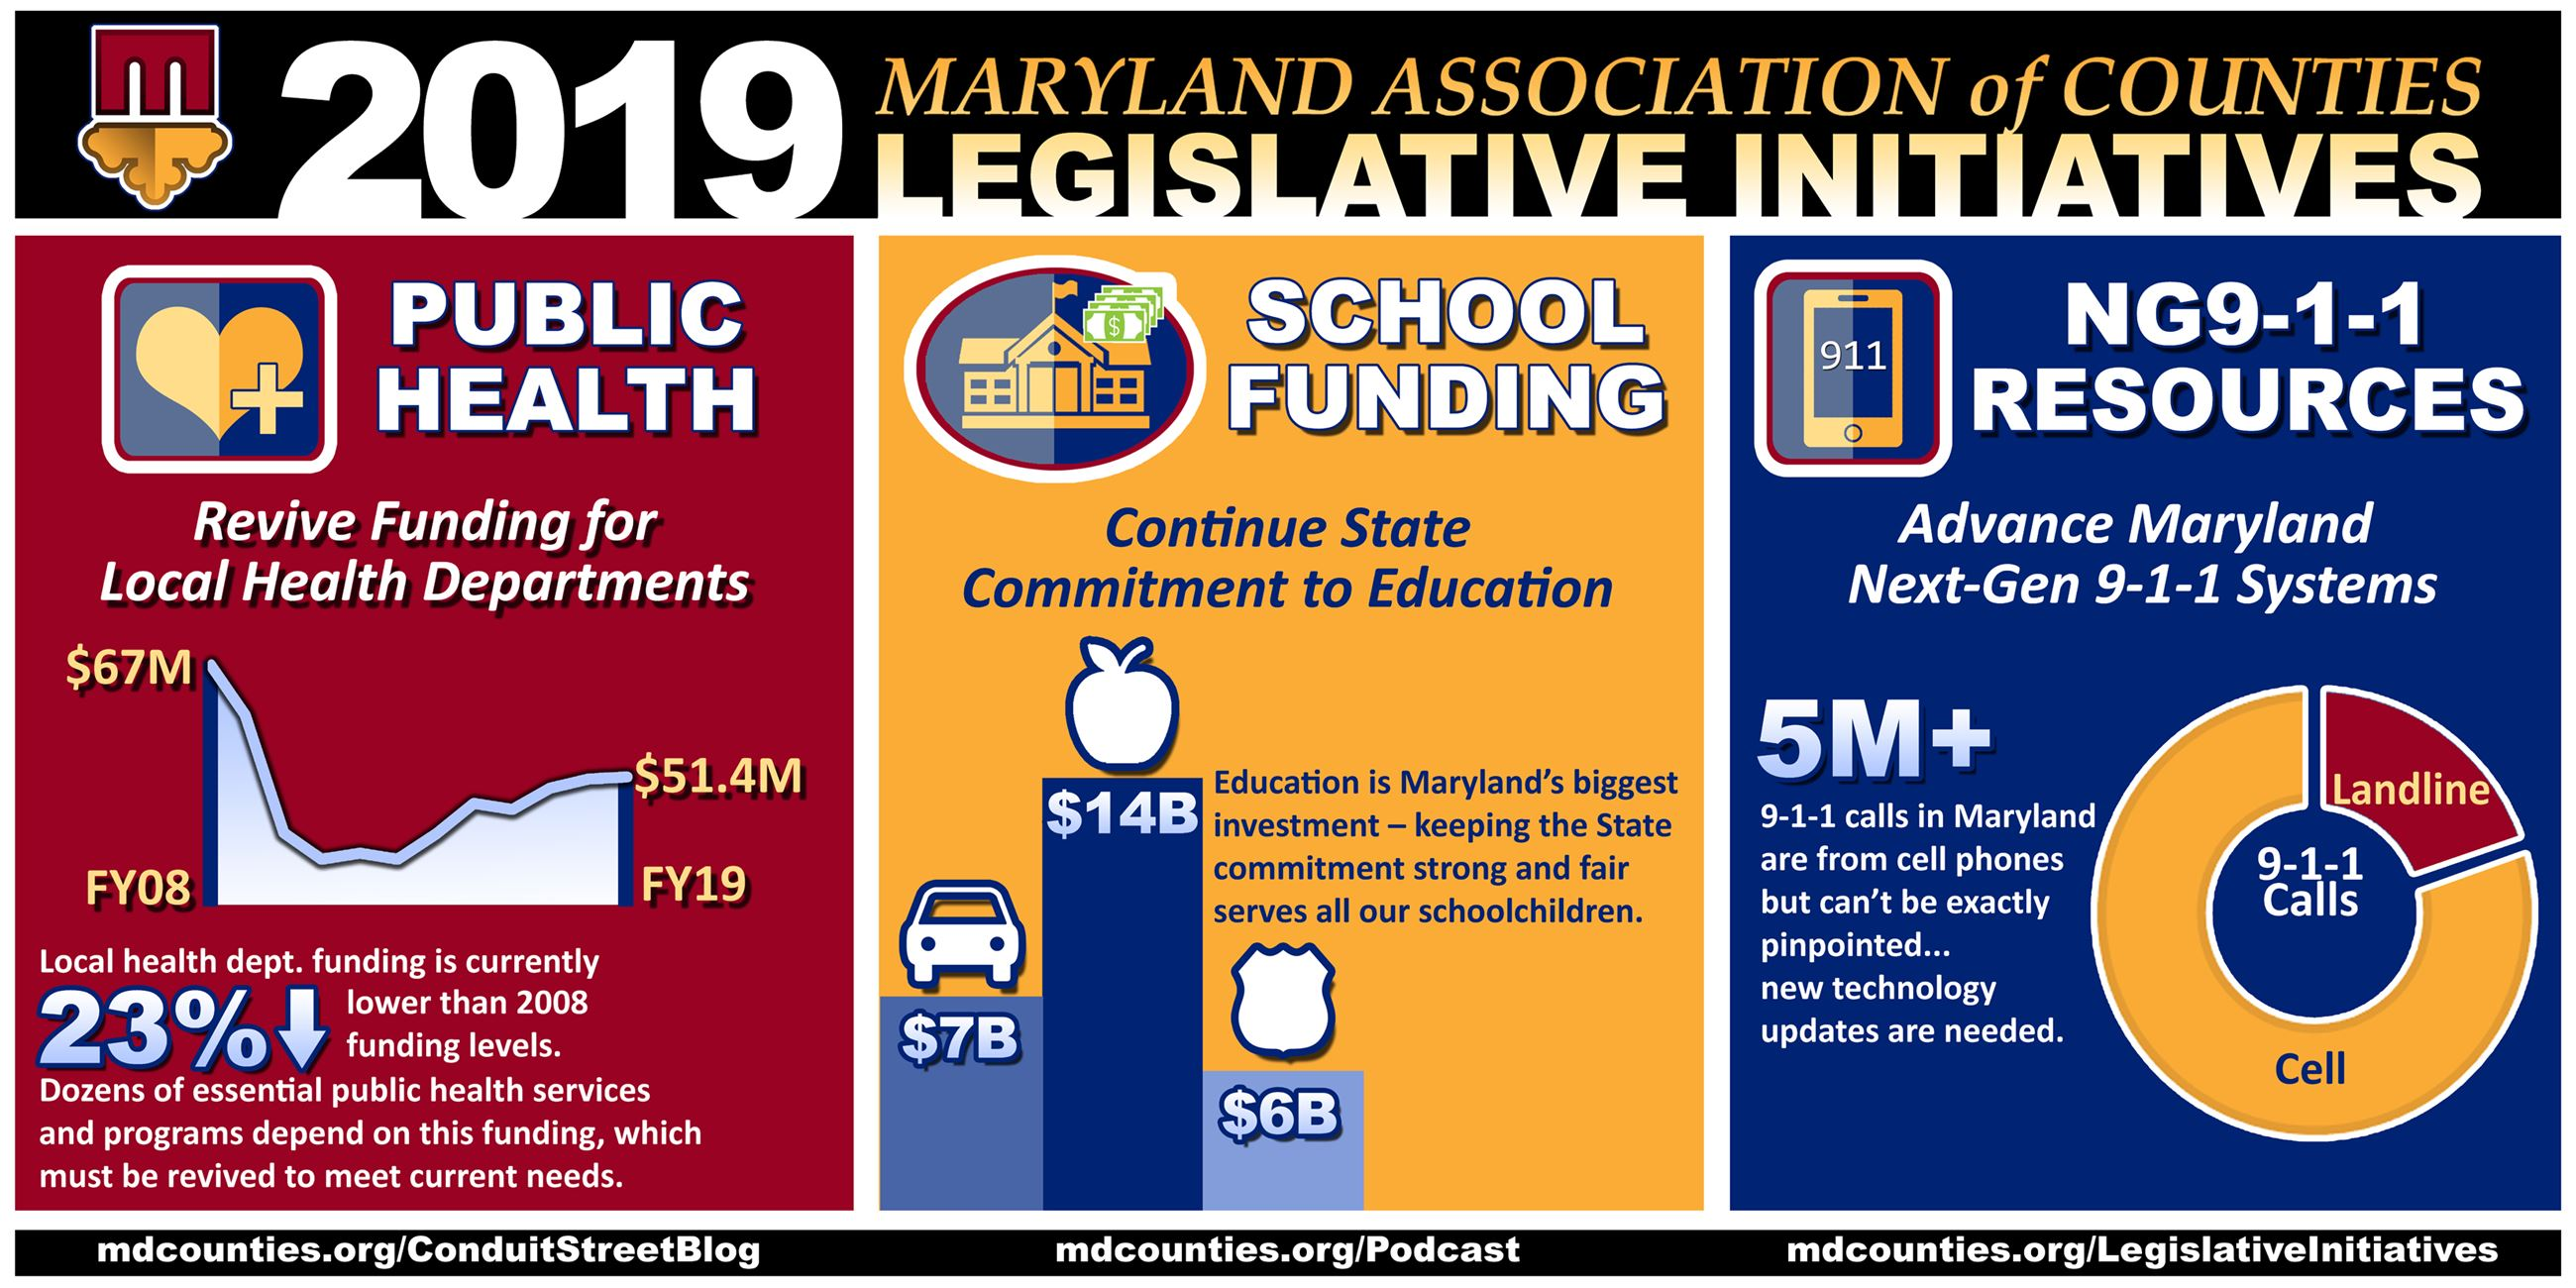 2019 Legislative Initiatives - sml